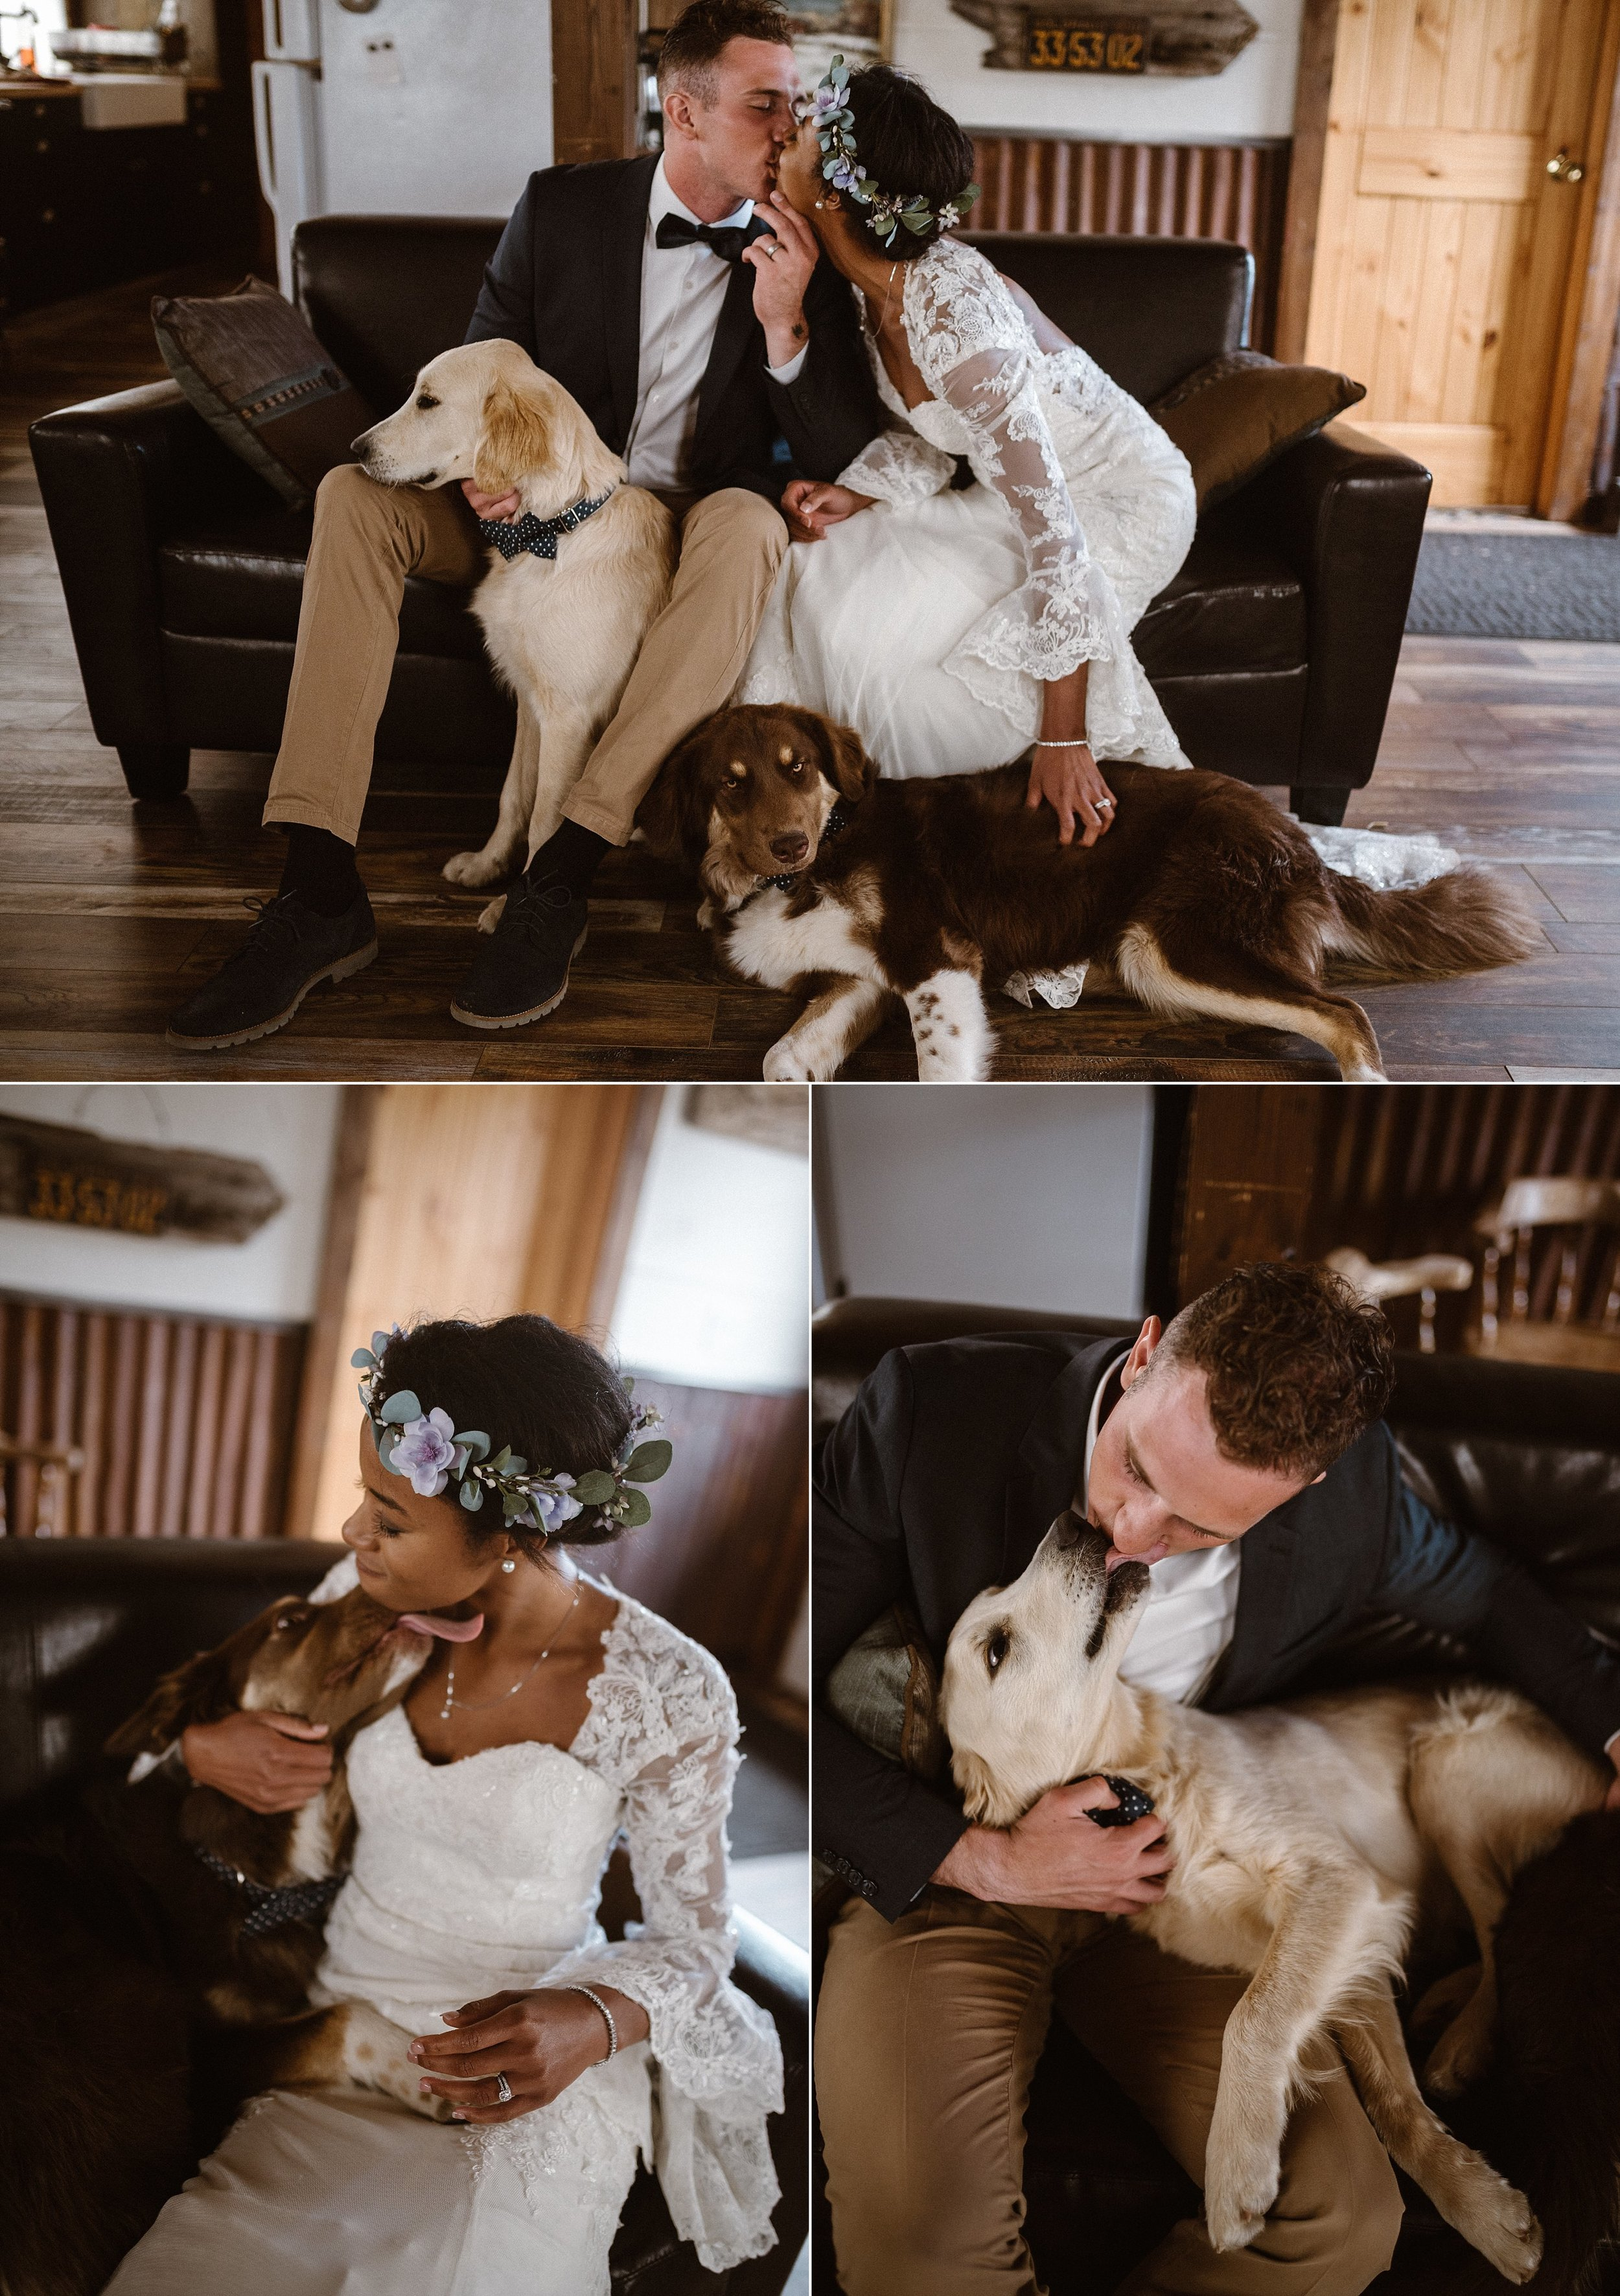 Even their puppies dressed up for this special occasion. Matching both bride and groom with vintage style polka-dotted bow ties. This intimate Loveland Pass elopement photographed by traveling wedding photographer Maddie Mae.